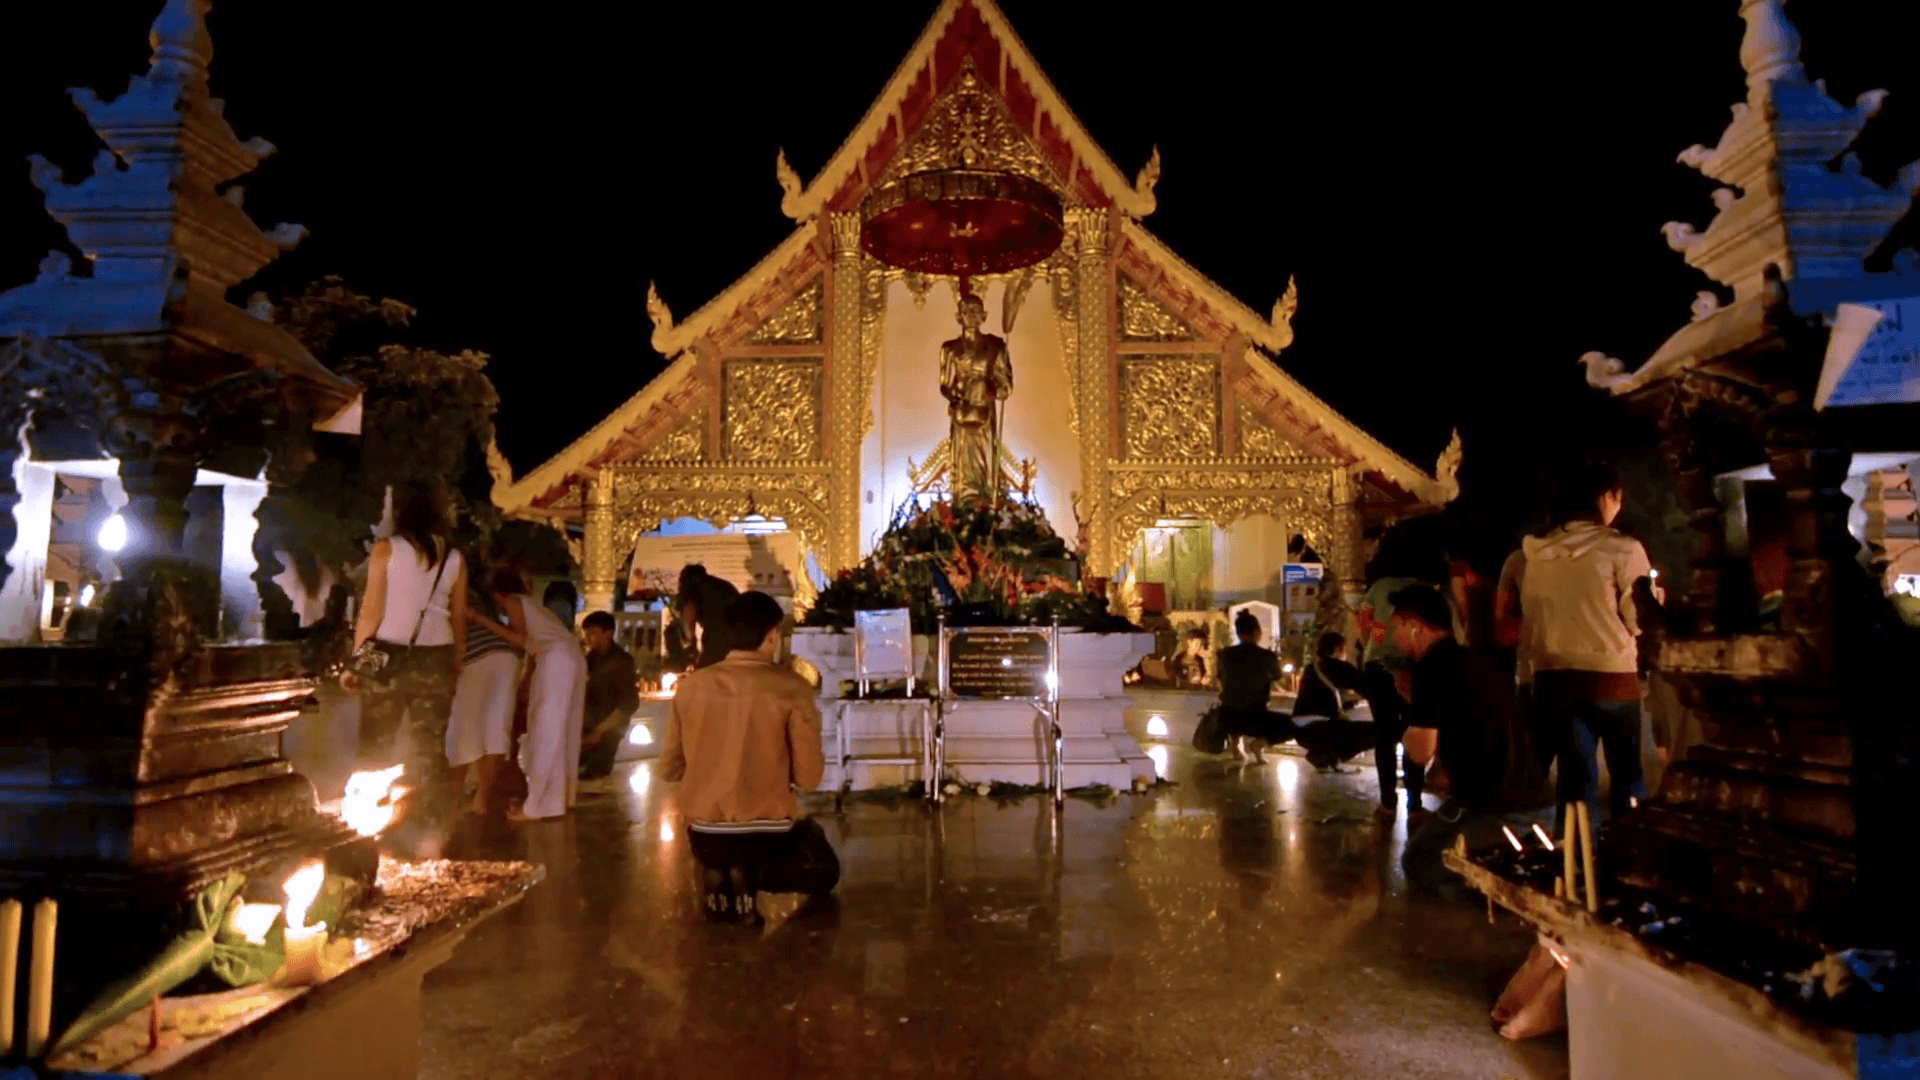 Chiang Mai, Thailand circa February 2016. Thai people praying and